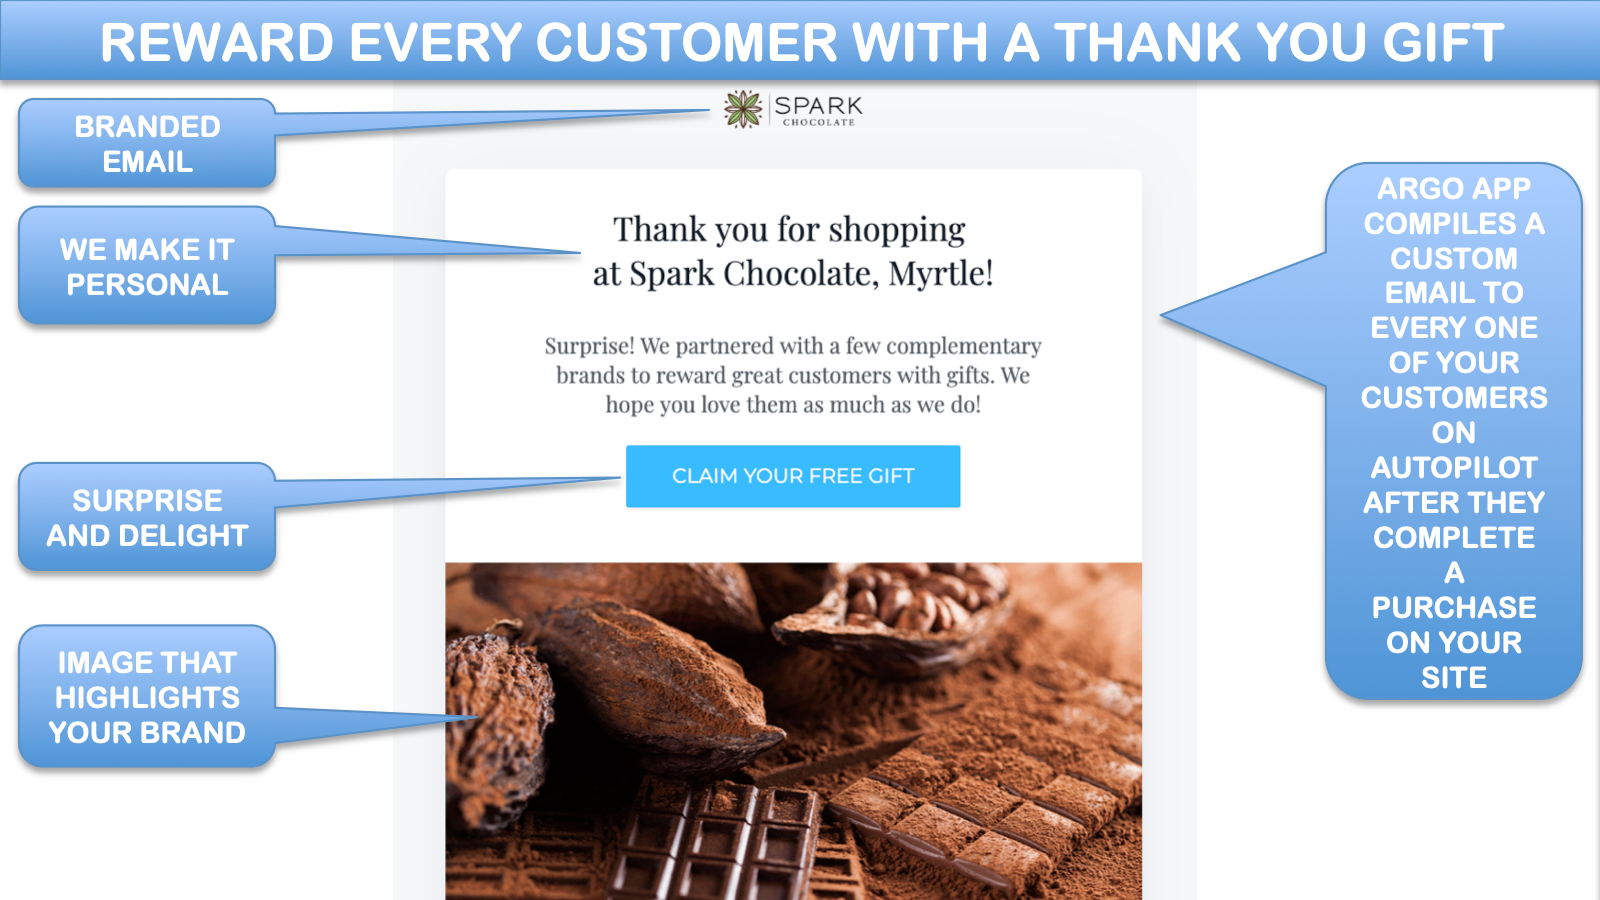 Branded gift email